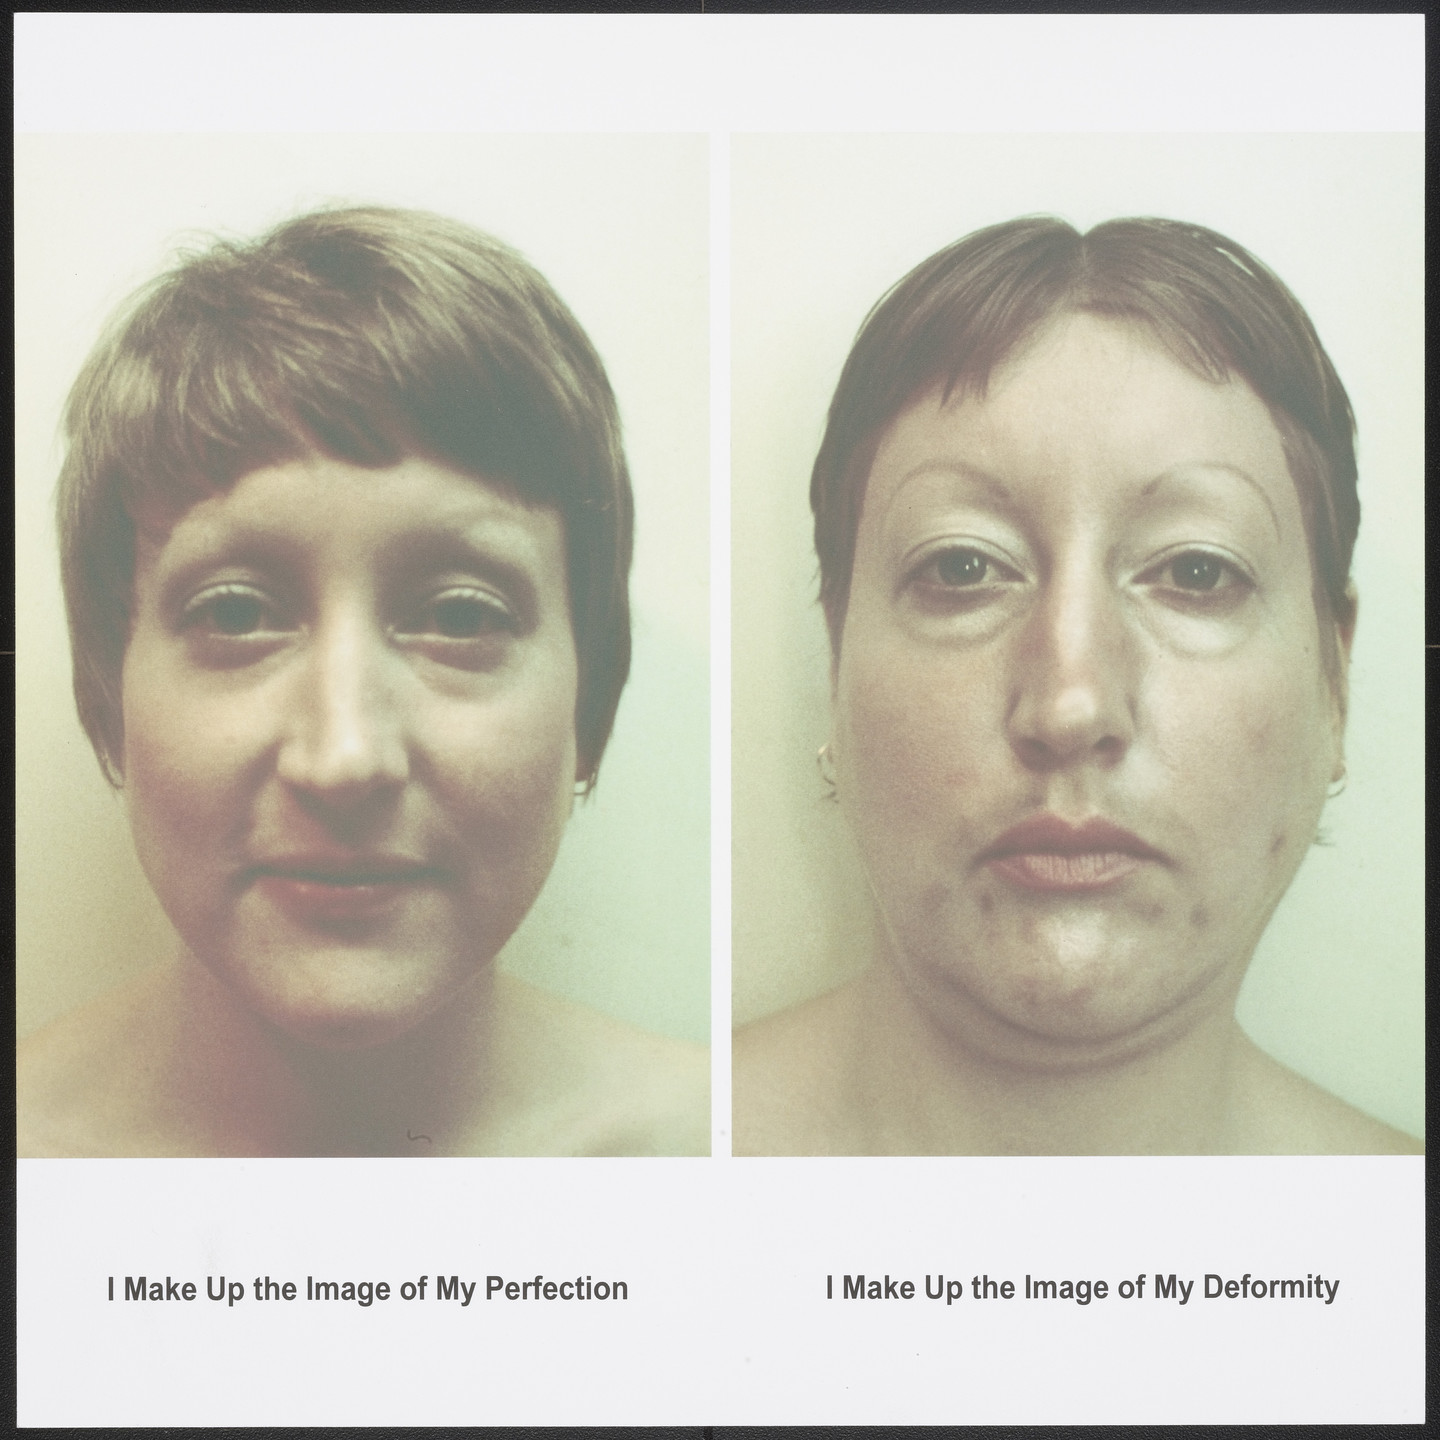 Martha Wilson. I Make Up the Image of My Perfection/ I Make Up the Image of My Deformity from Femfolio. 2009